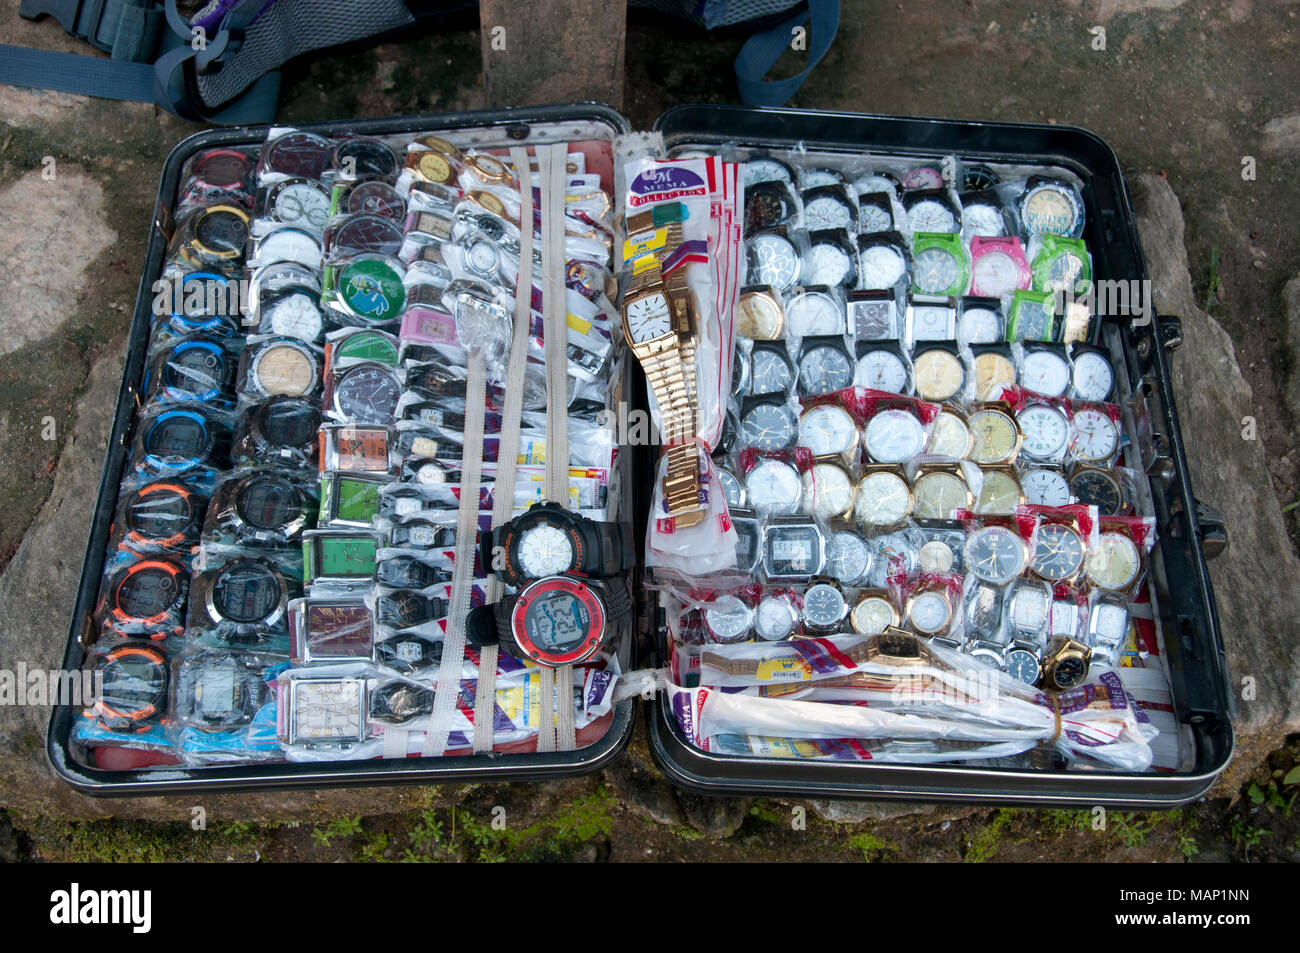 Nepal 2014. Manebhajang. Case of watches belonging to a travelling salesman; - Stock Image